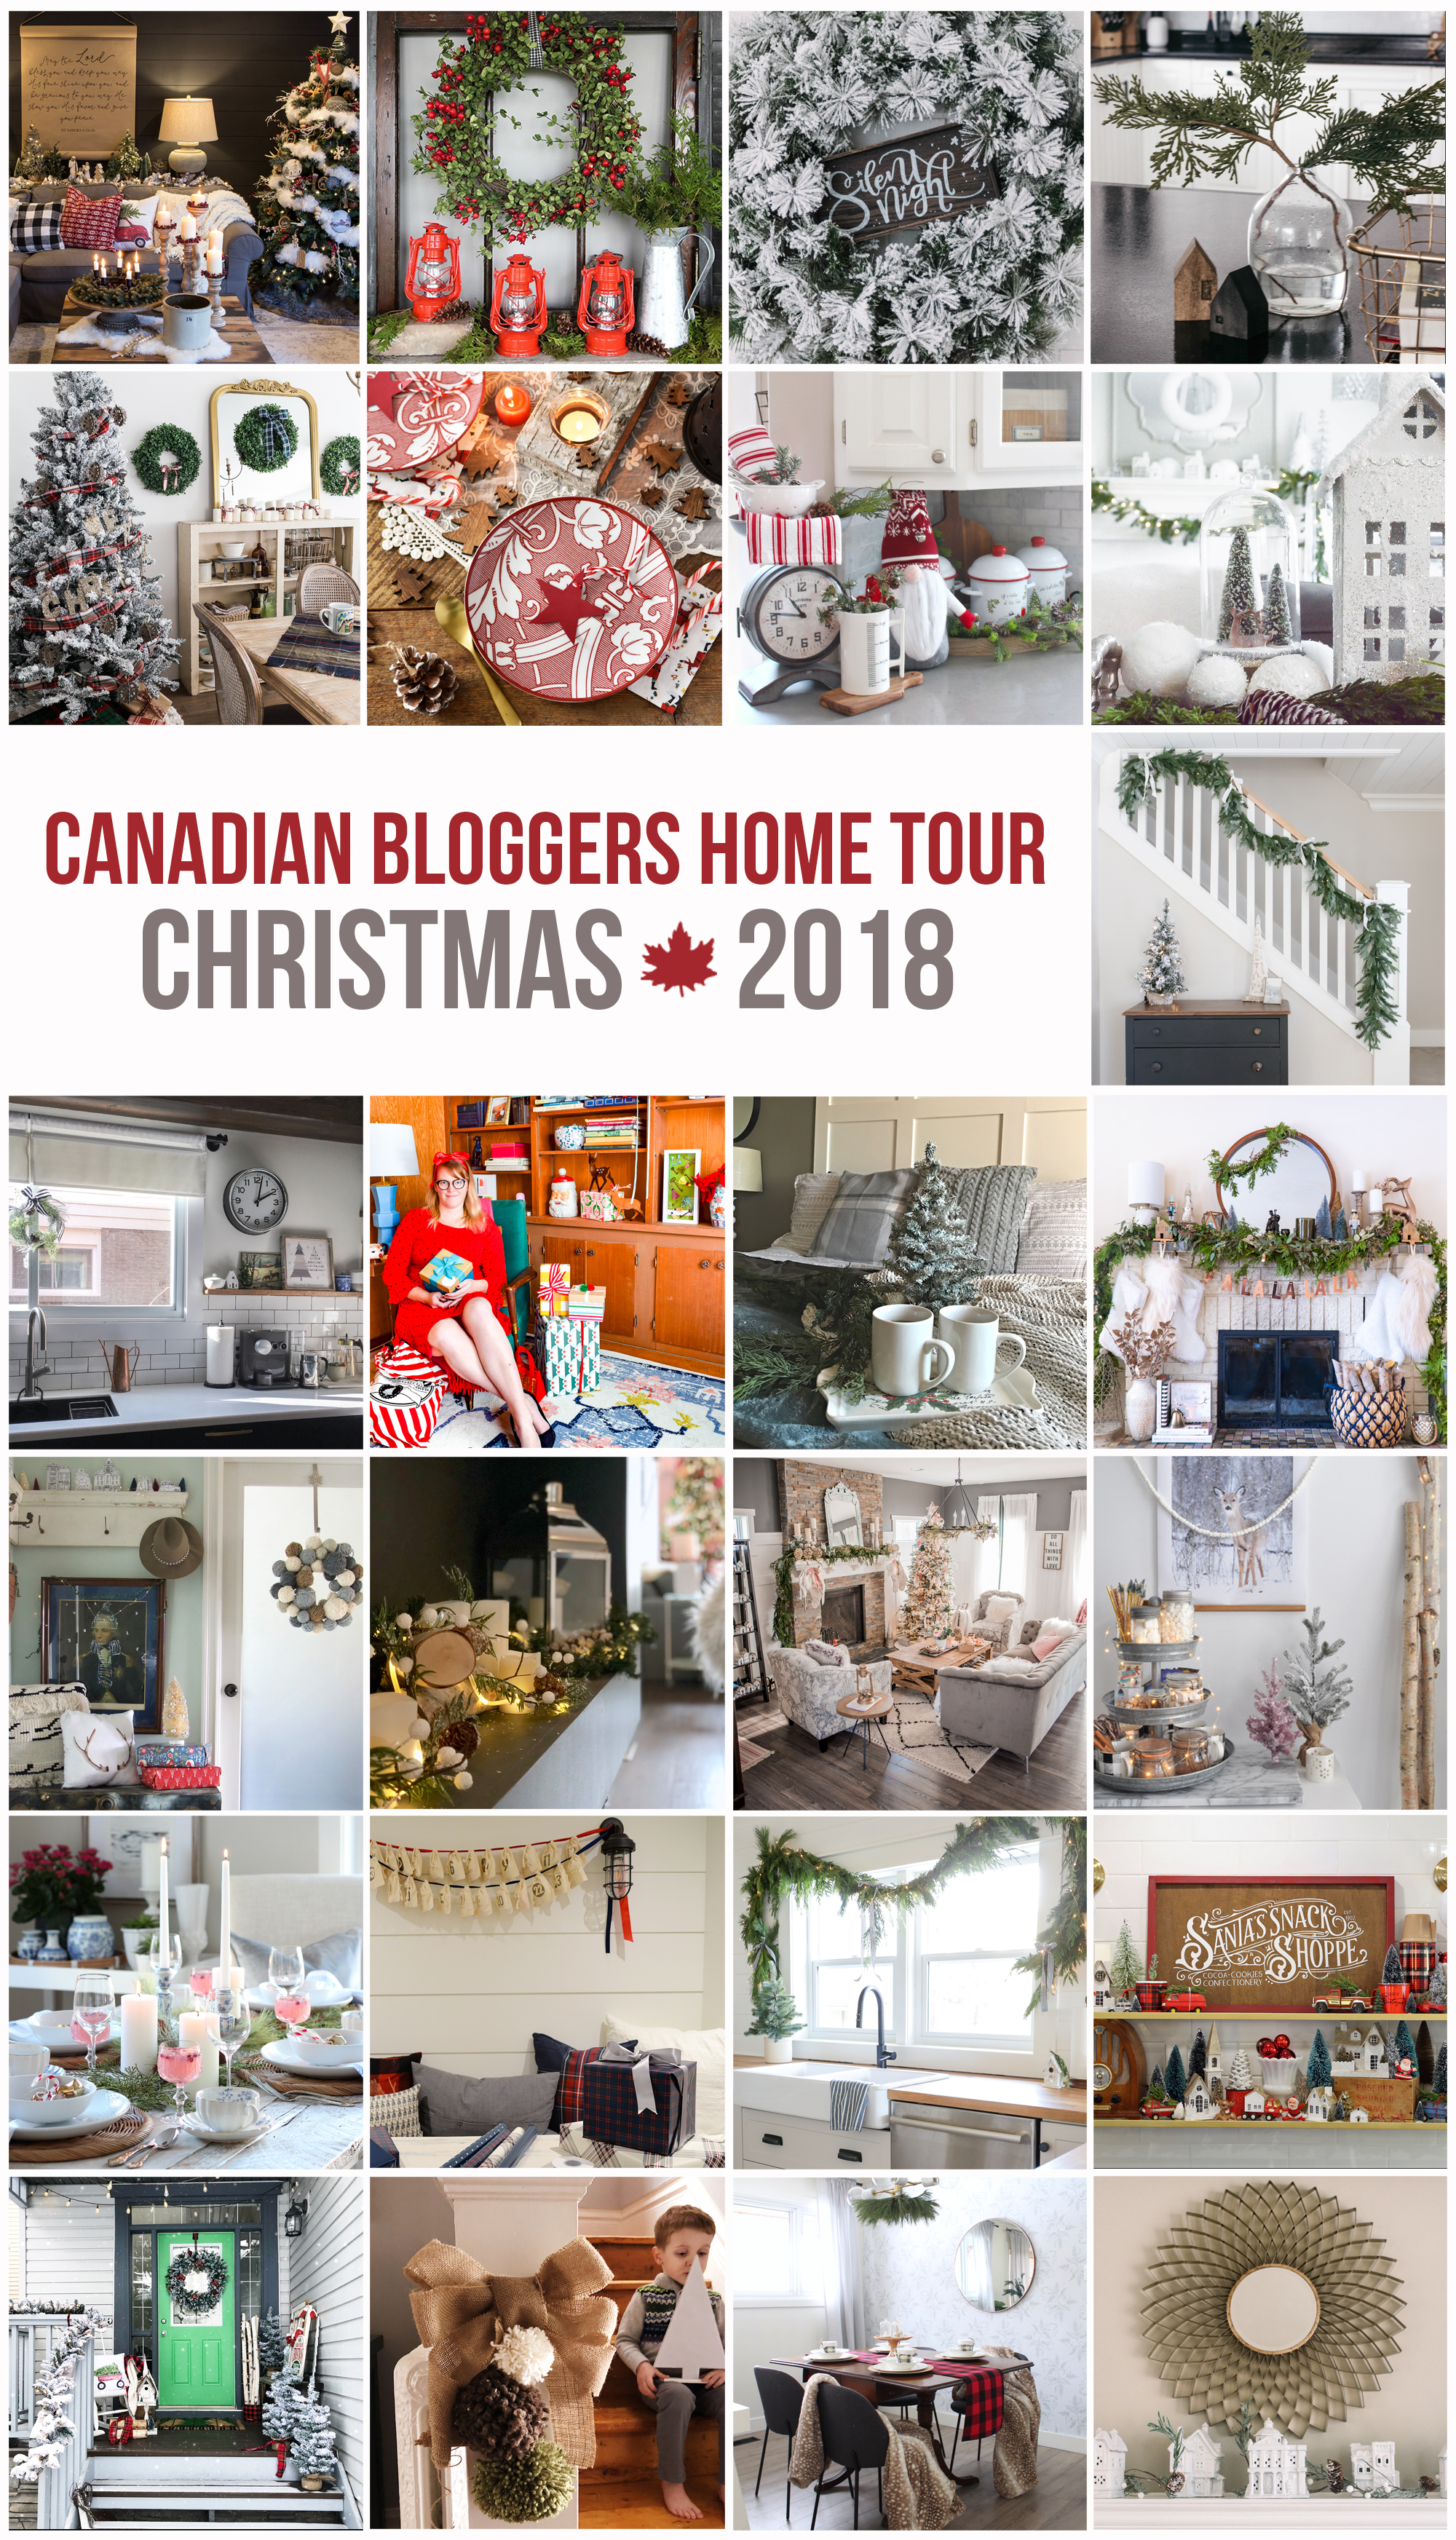 Canadian Bloggers 2018 Christmas Home Tour